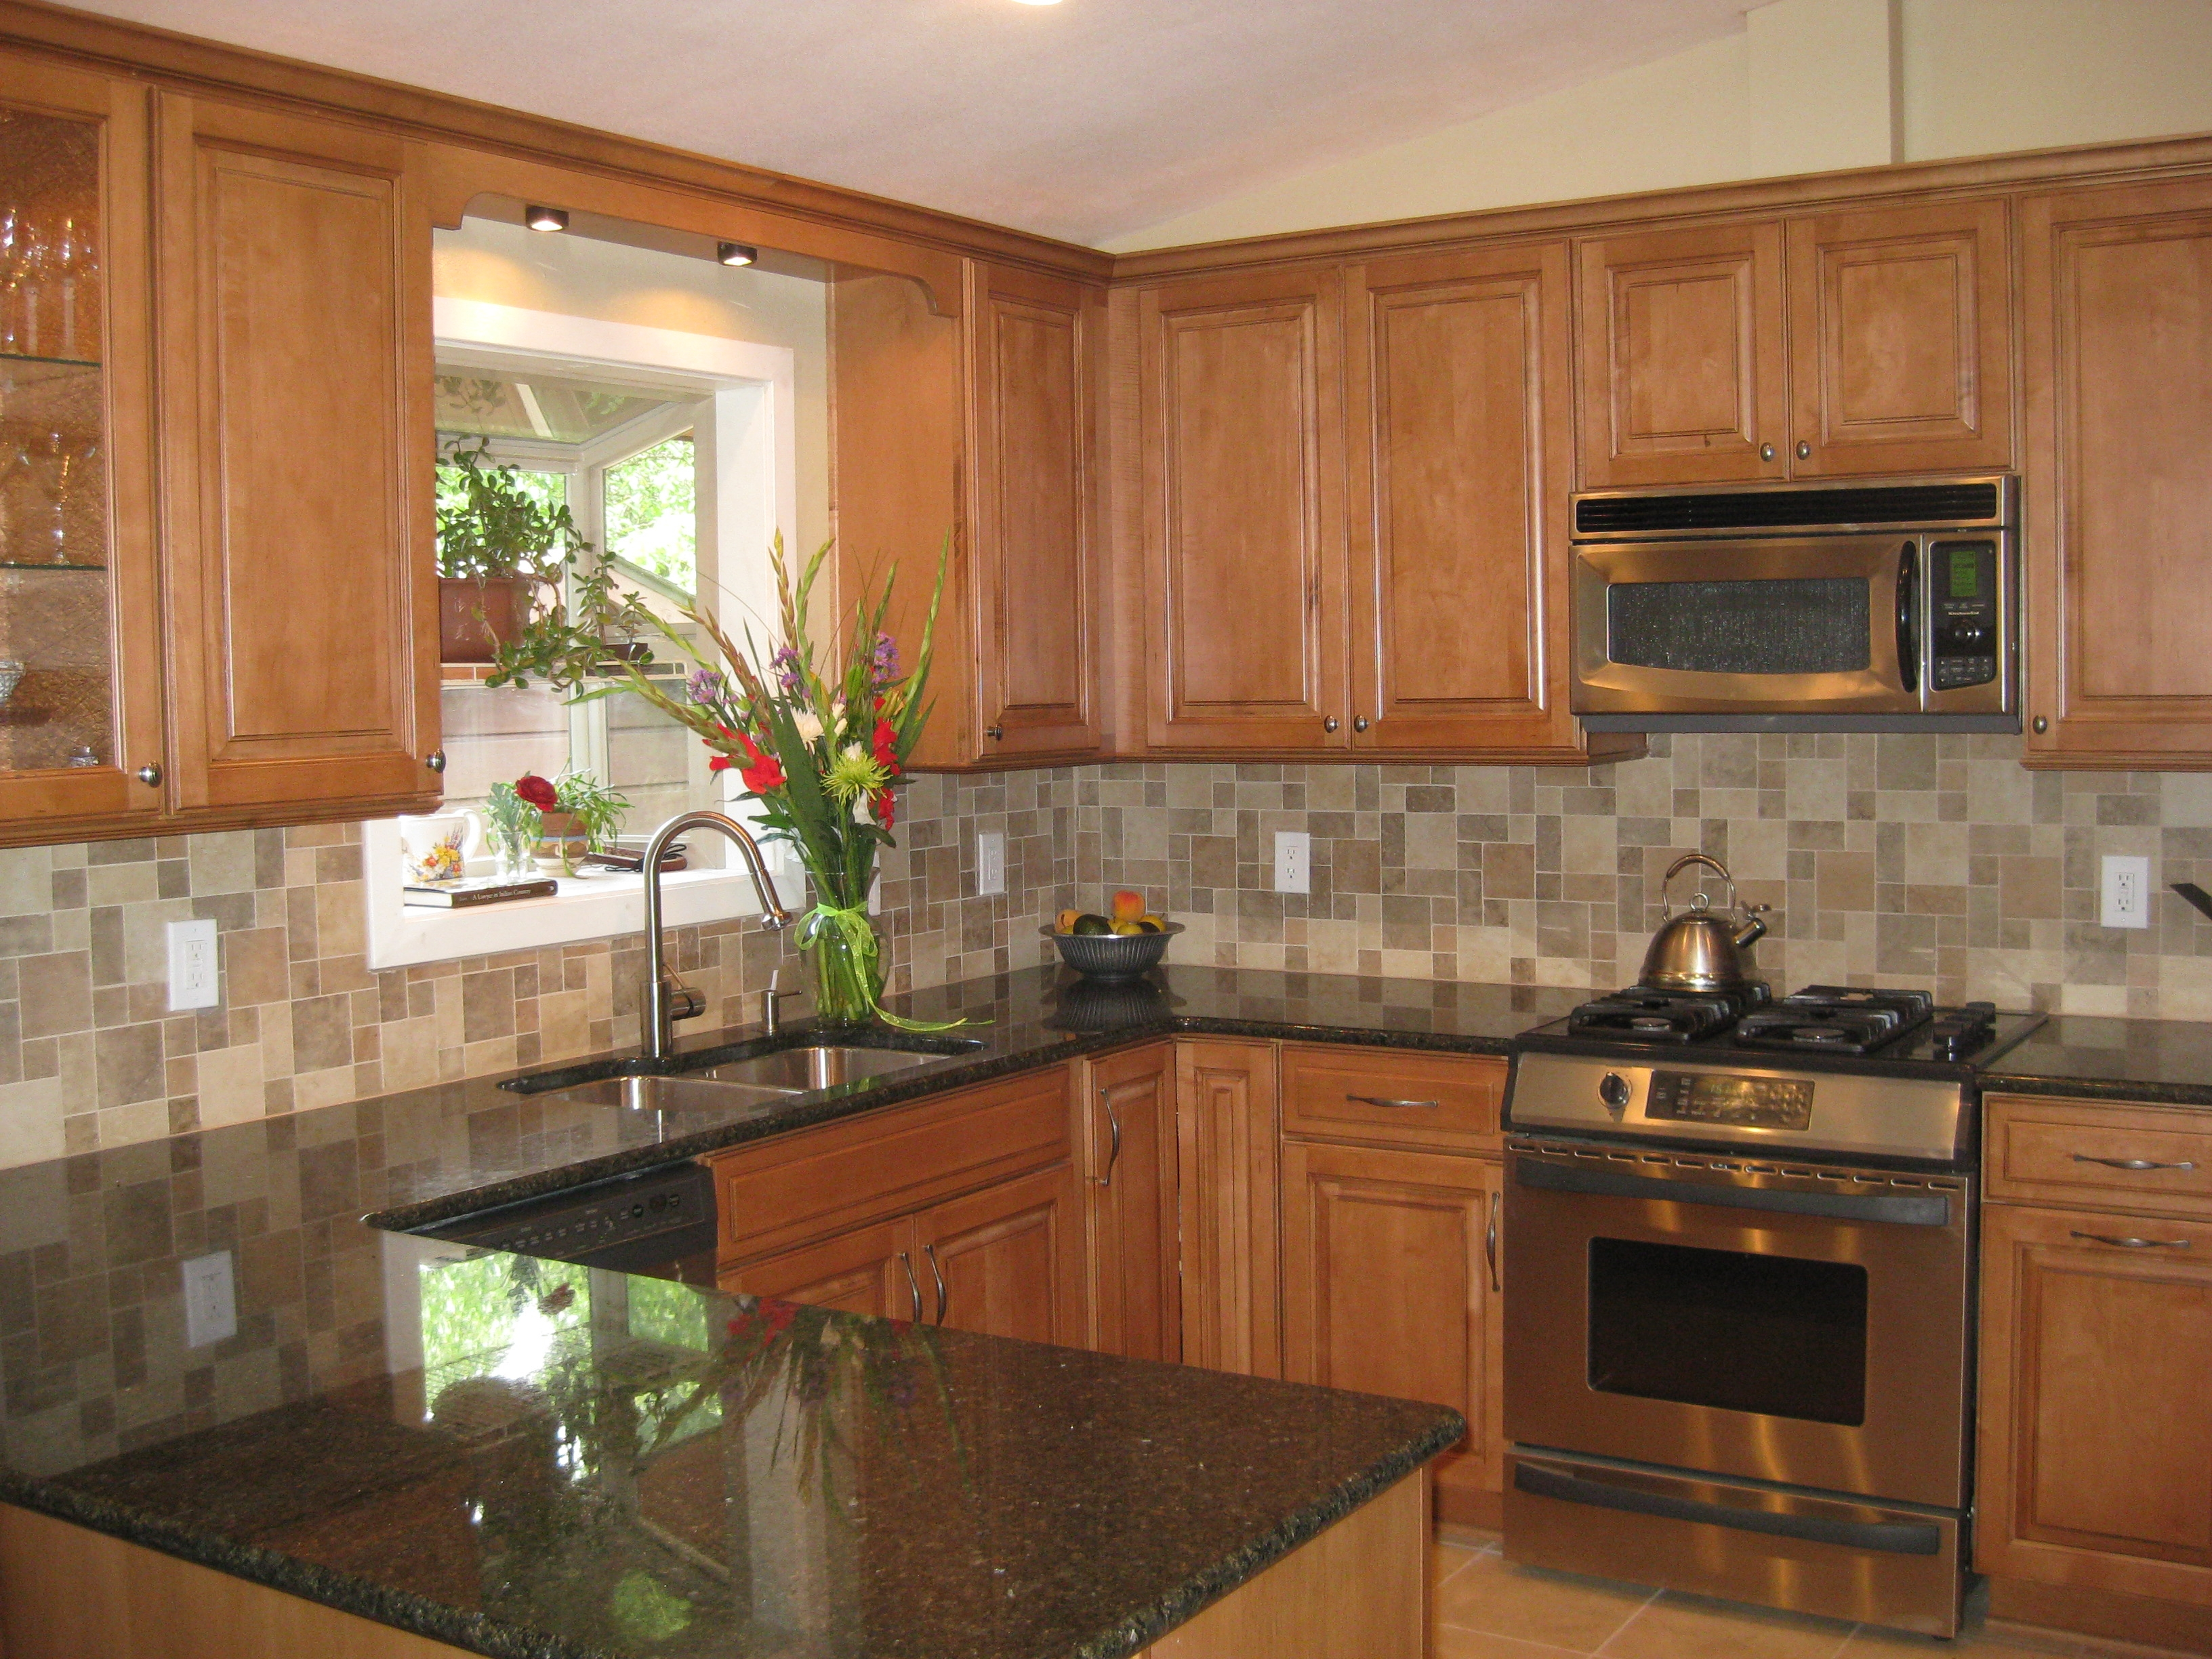 Popular Kitchen Cabinets And Countertopslight maple kitchen cabinets with granite countertops kitchen